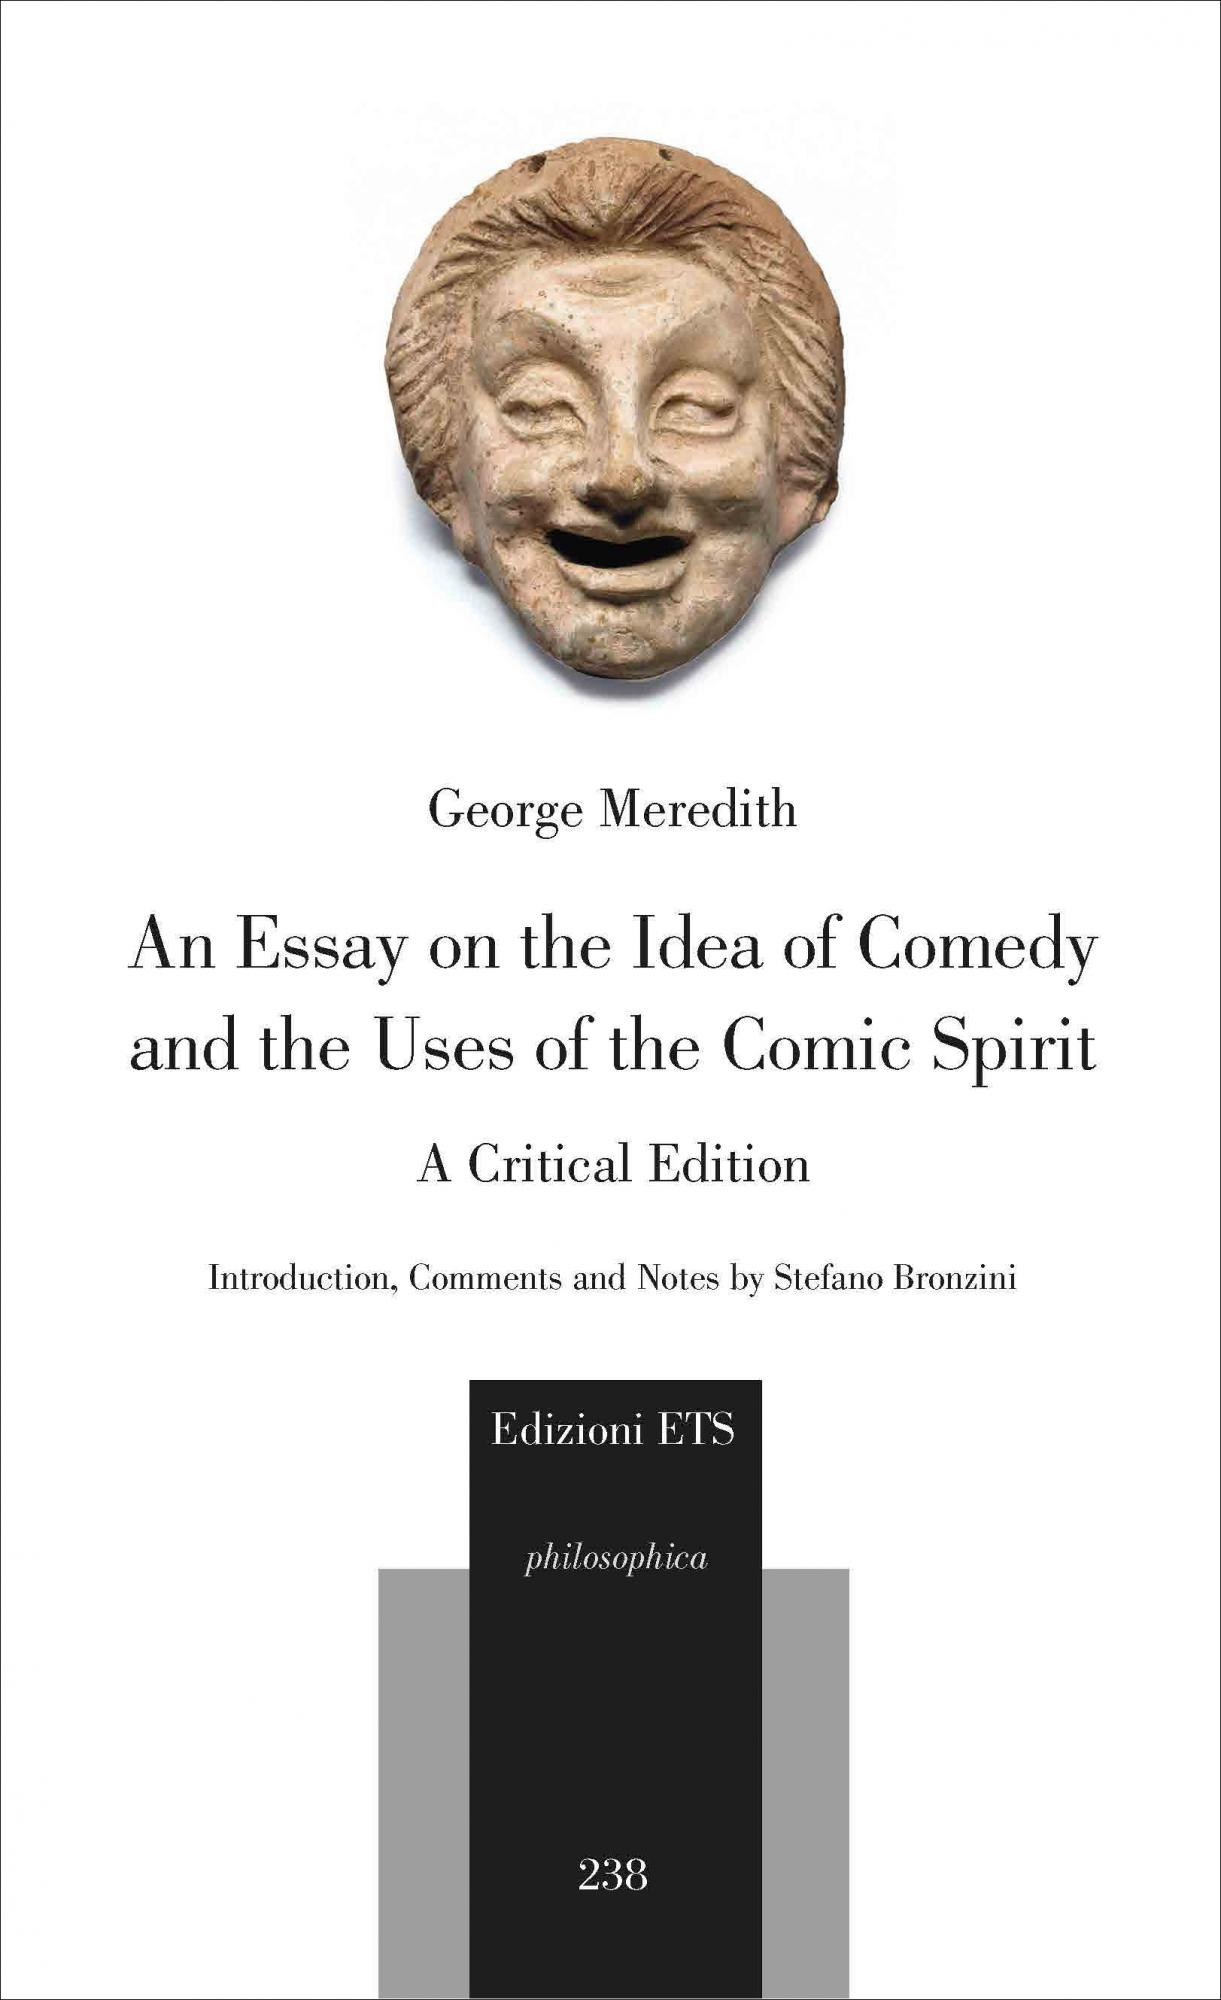 An Essay on the Idea of Comedy and the Uses of the Comic Spirit.A Critical Edition